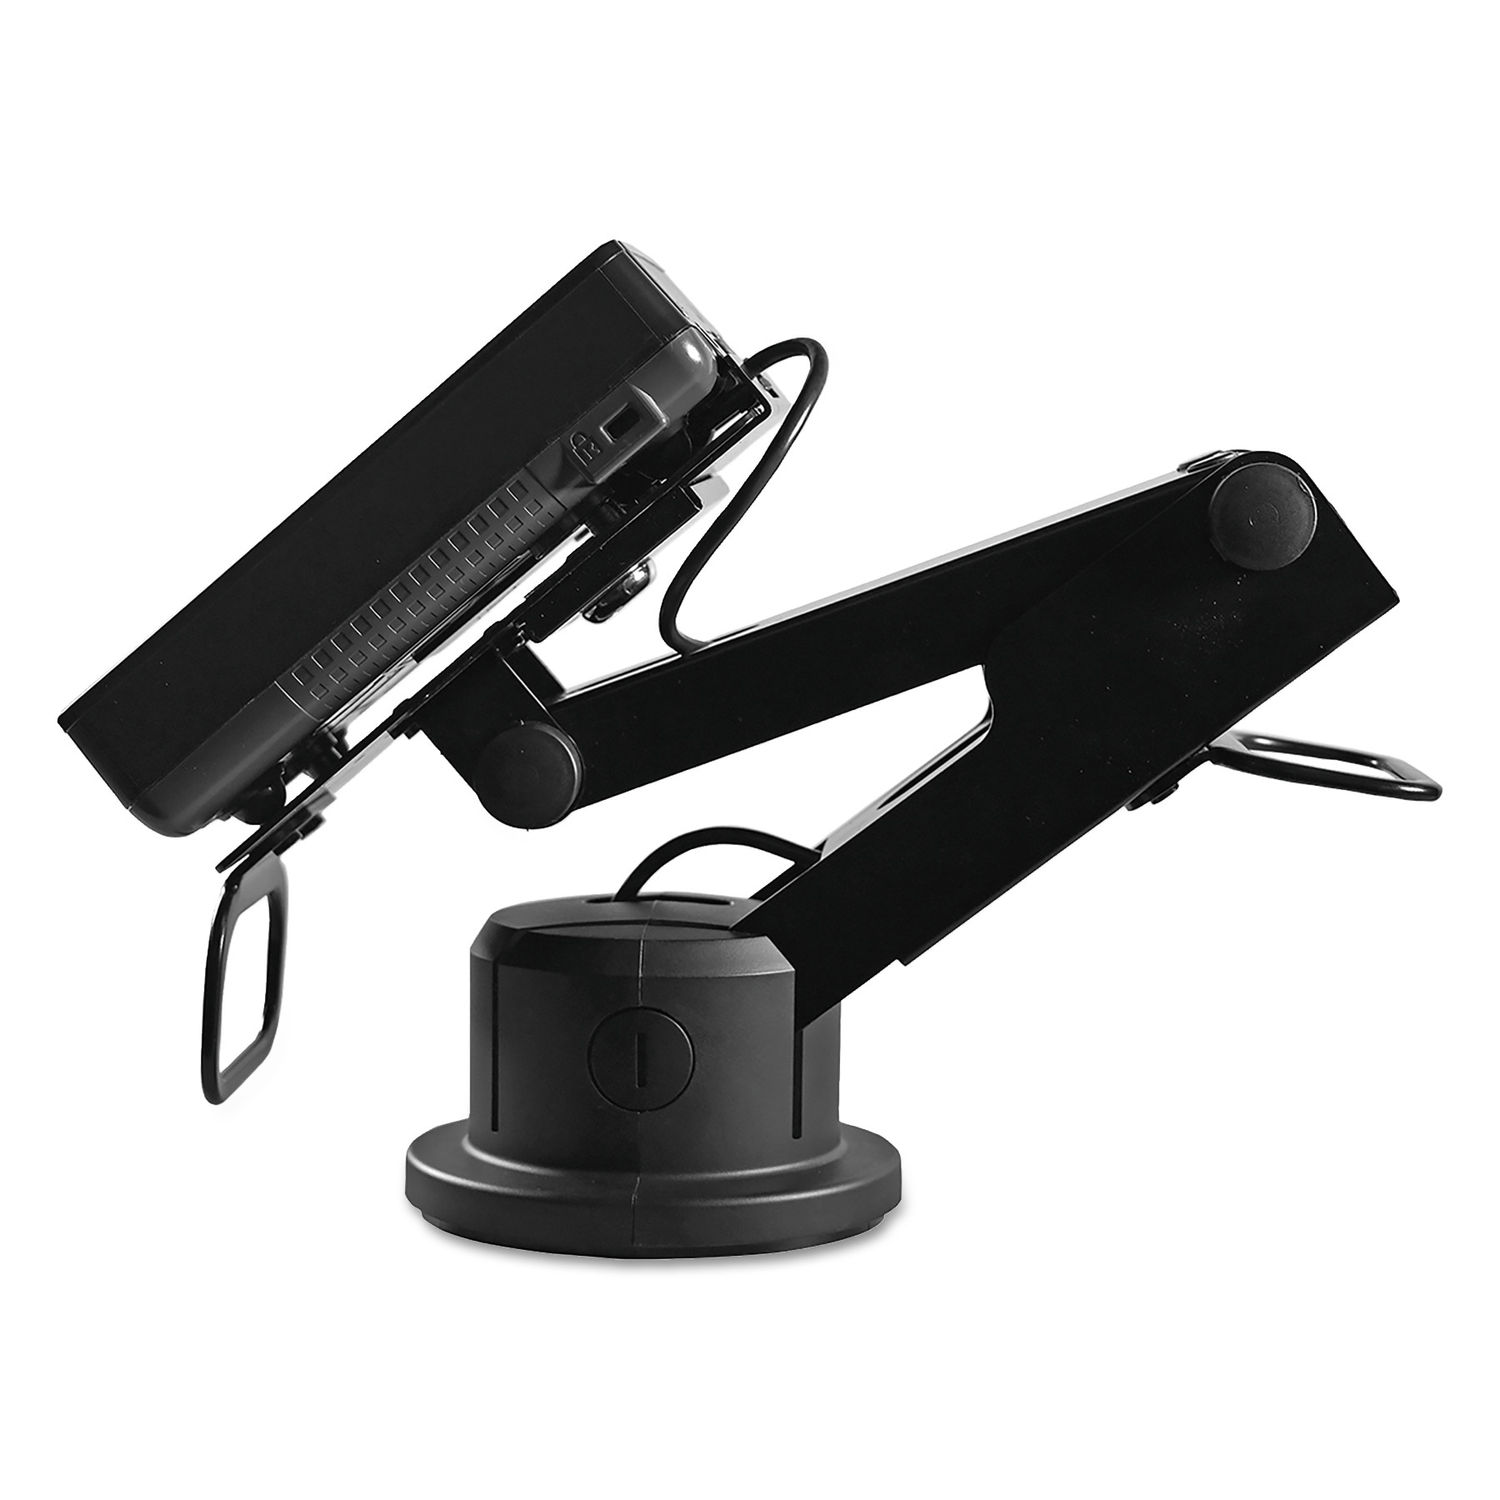 Replacement for MMF POS MMFCVR0208